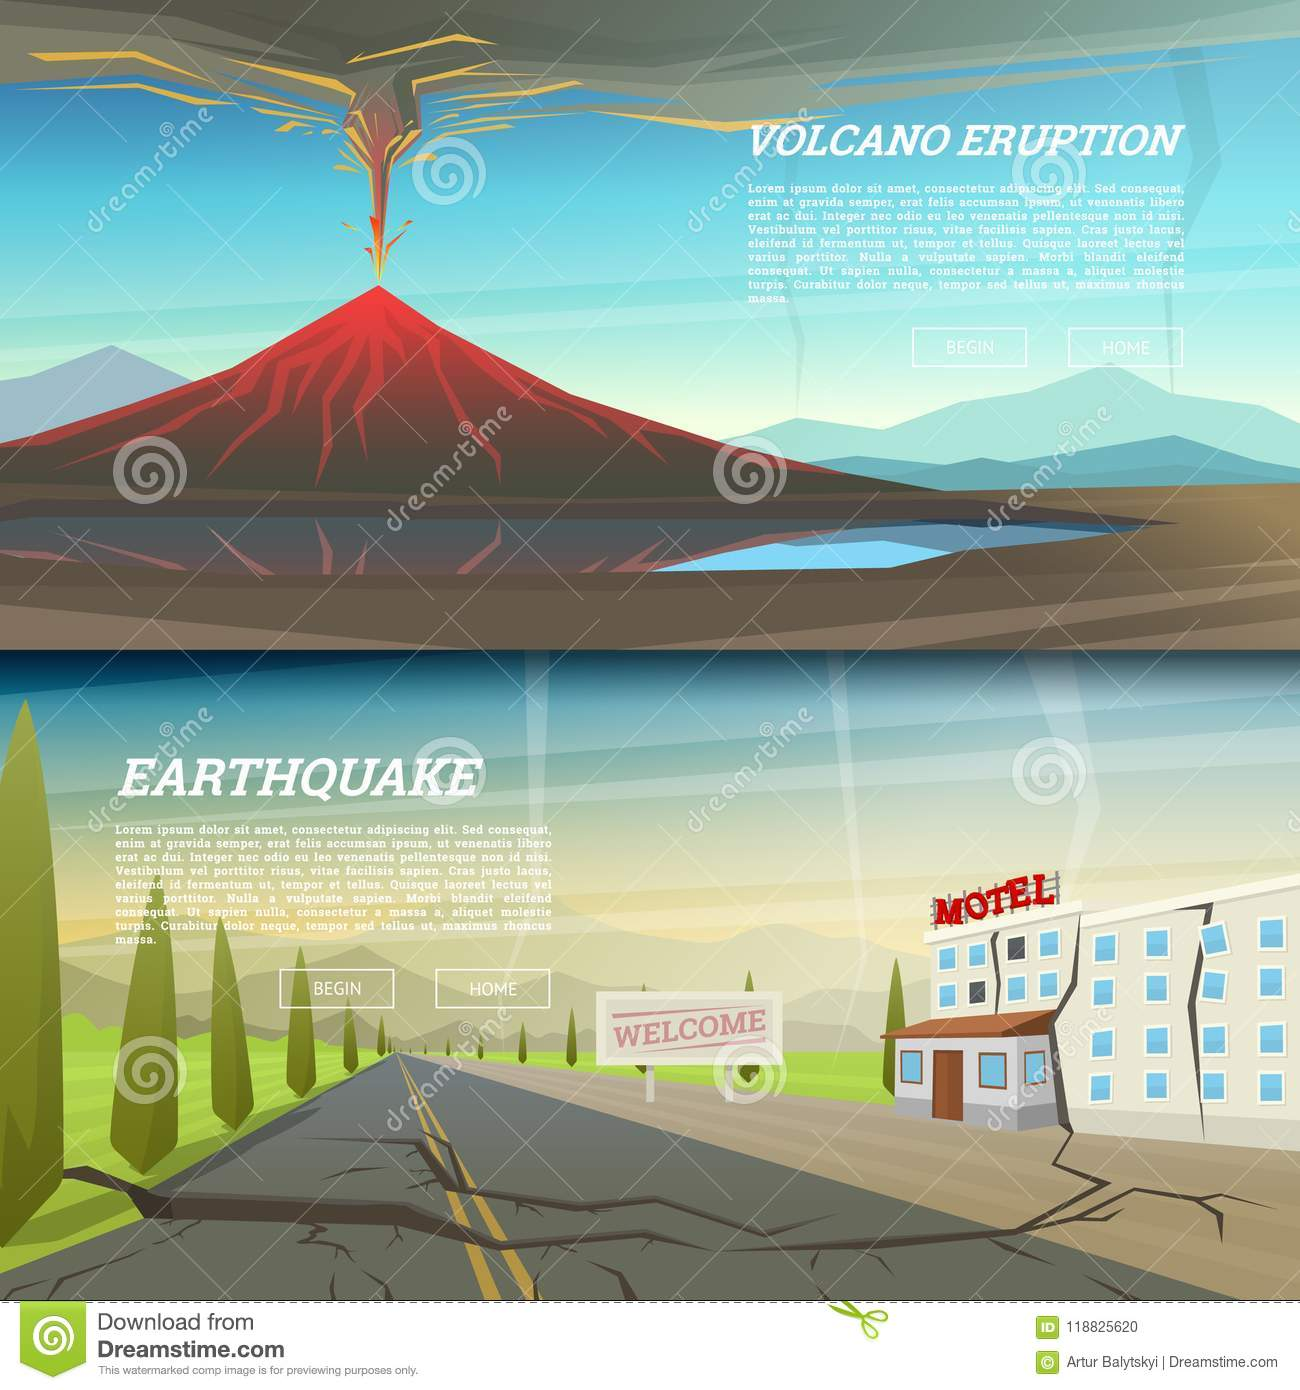 Active volcano eruption with leaky magma background natural disaster or cataclysm earthquake with ground